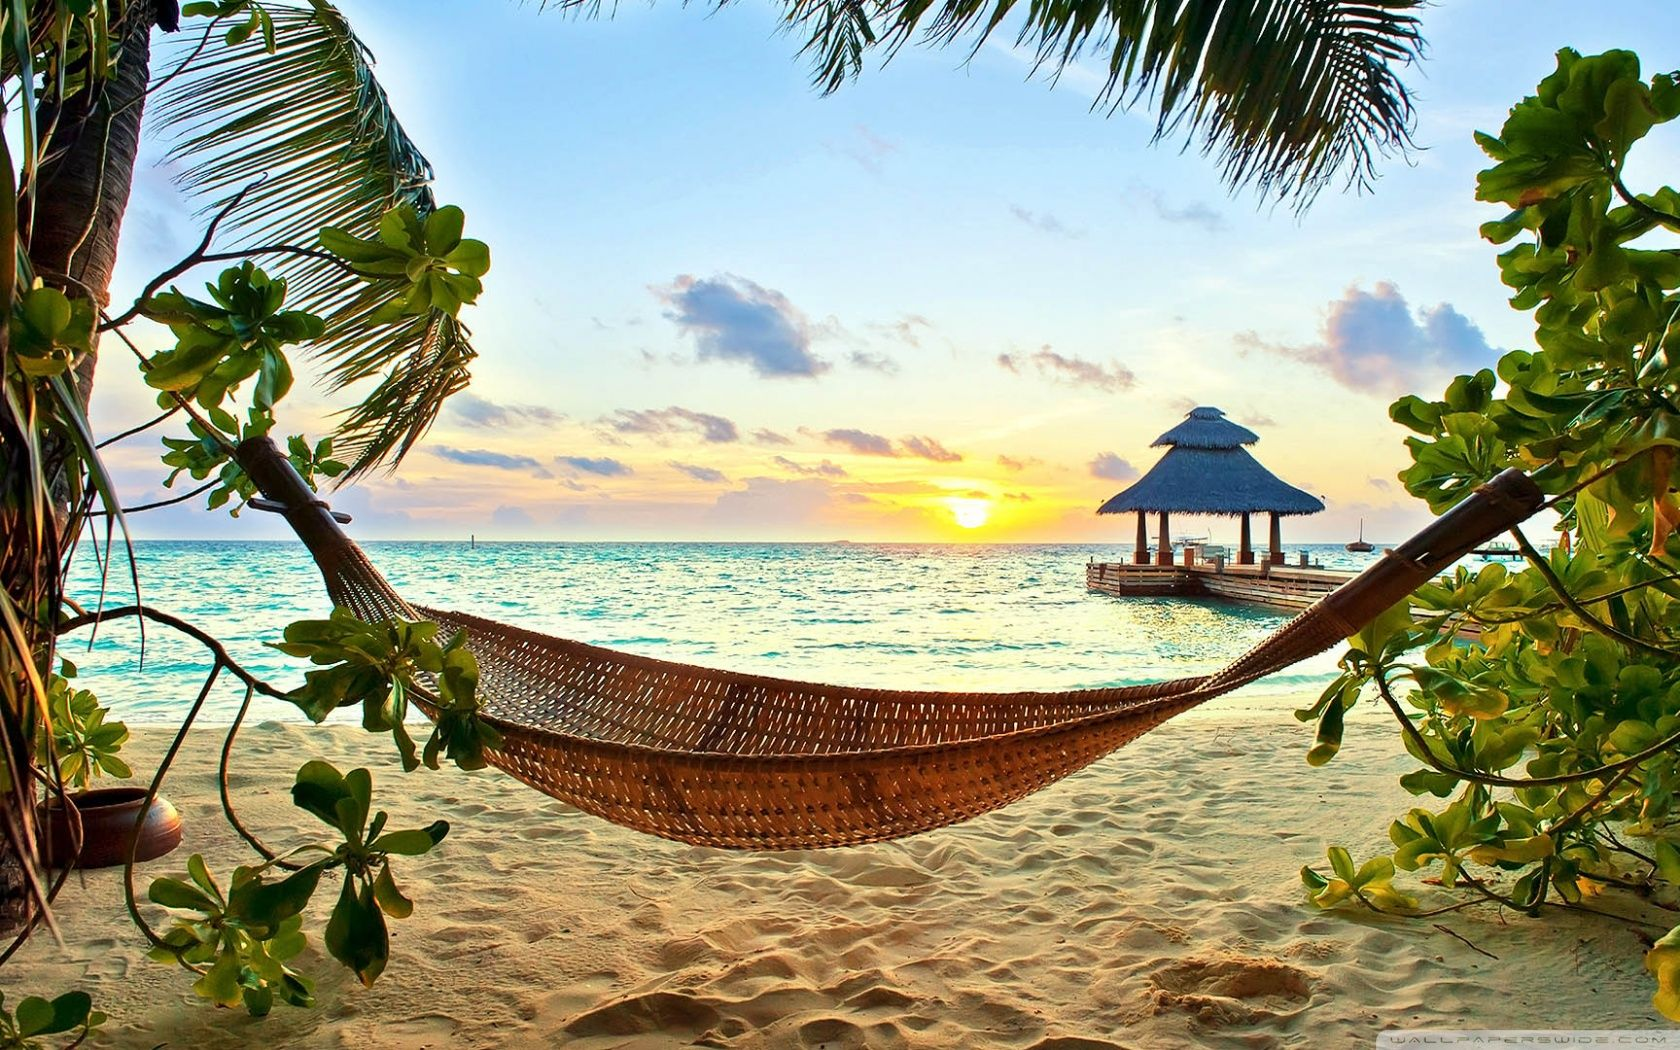 Tropical paradise desktop wallpapers top free tropical paradise desktop backgrounds - Paradise pictures backgrounds ...